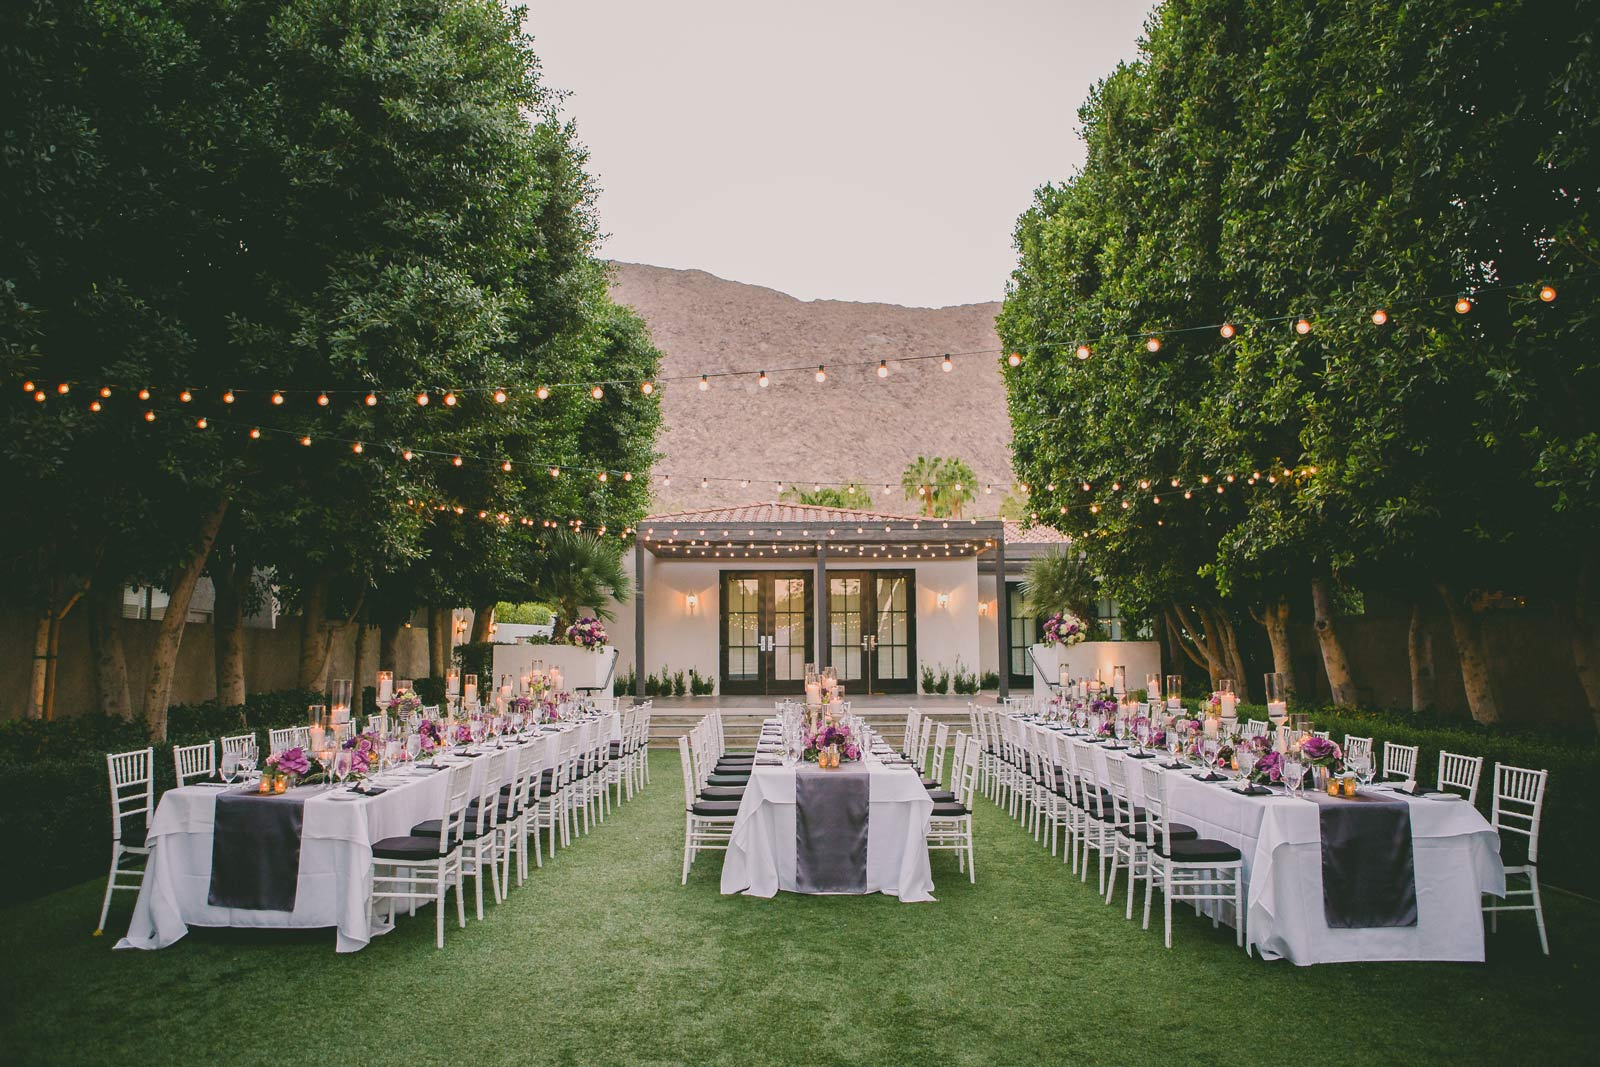 Lawn surrounded by trees and tables and chairs elegantly set